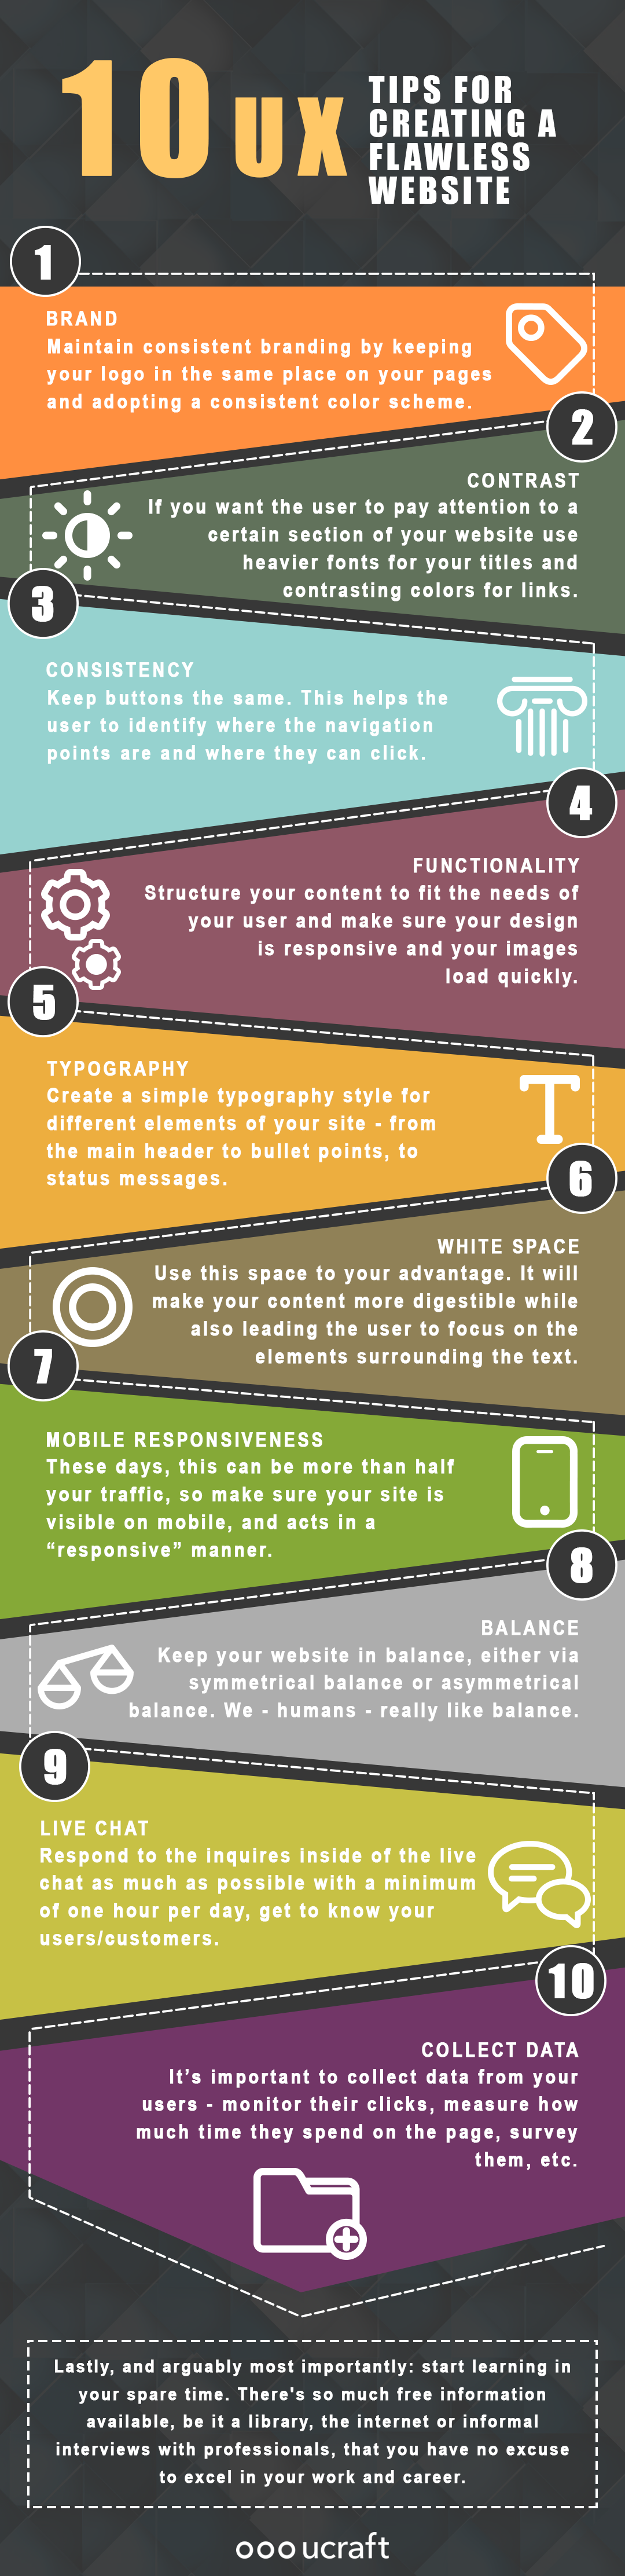 user experience tips